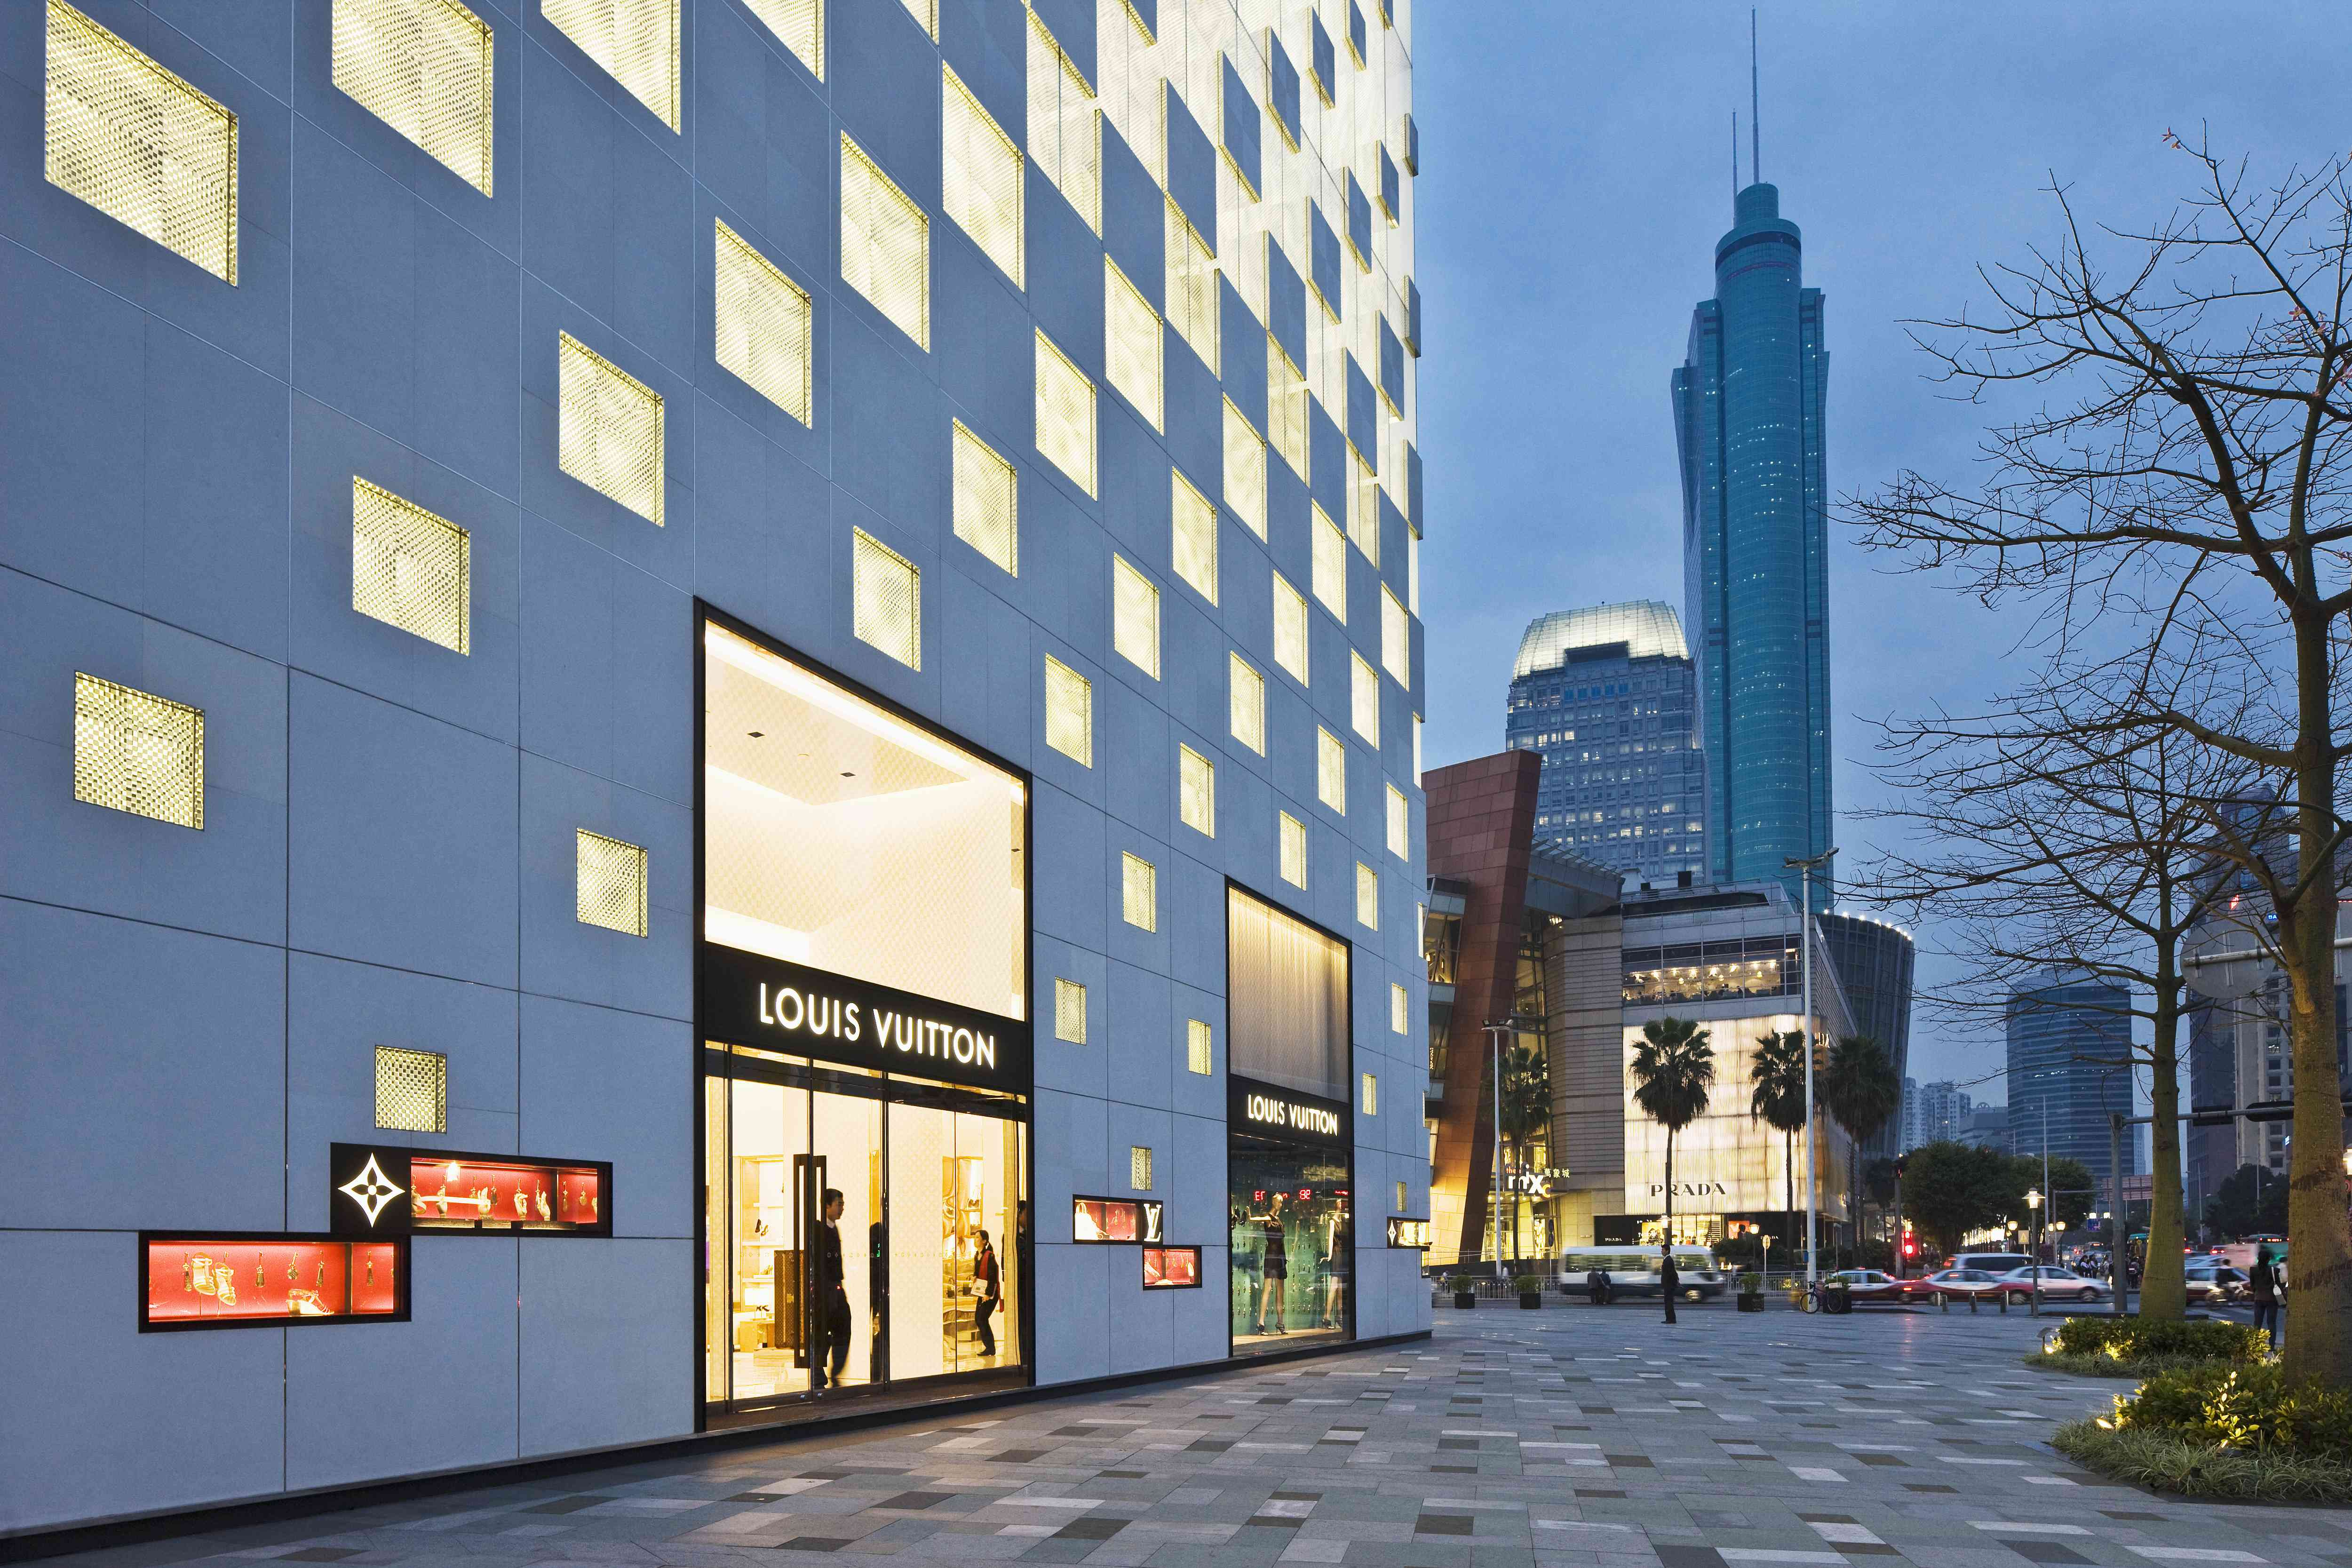 Louis Vuitton shop at the MixC shopping mall in Shenzhen